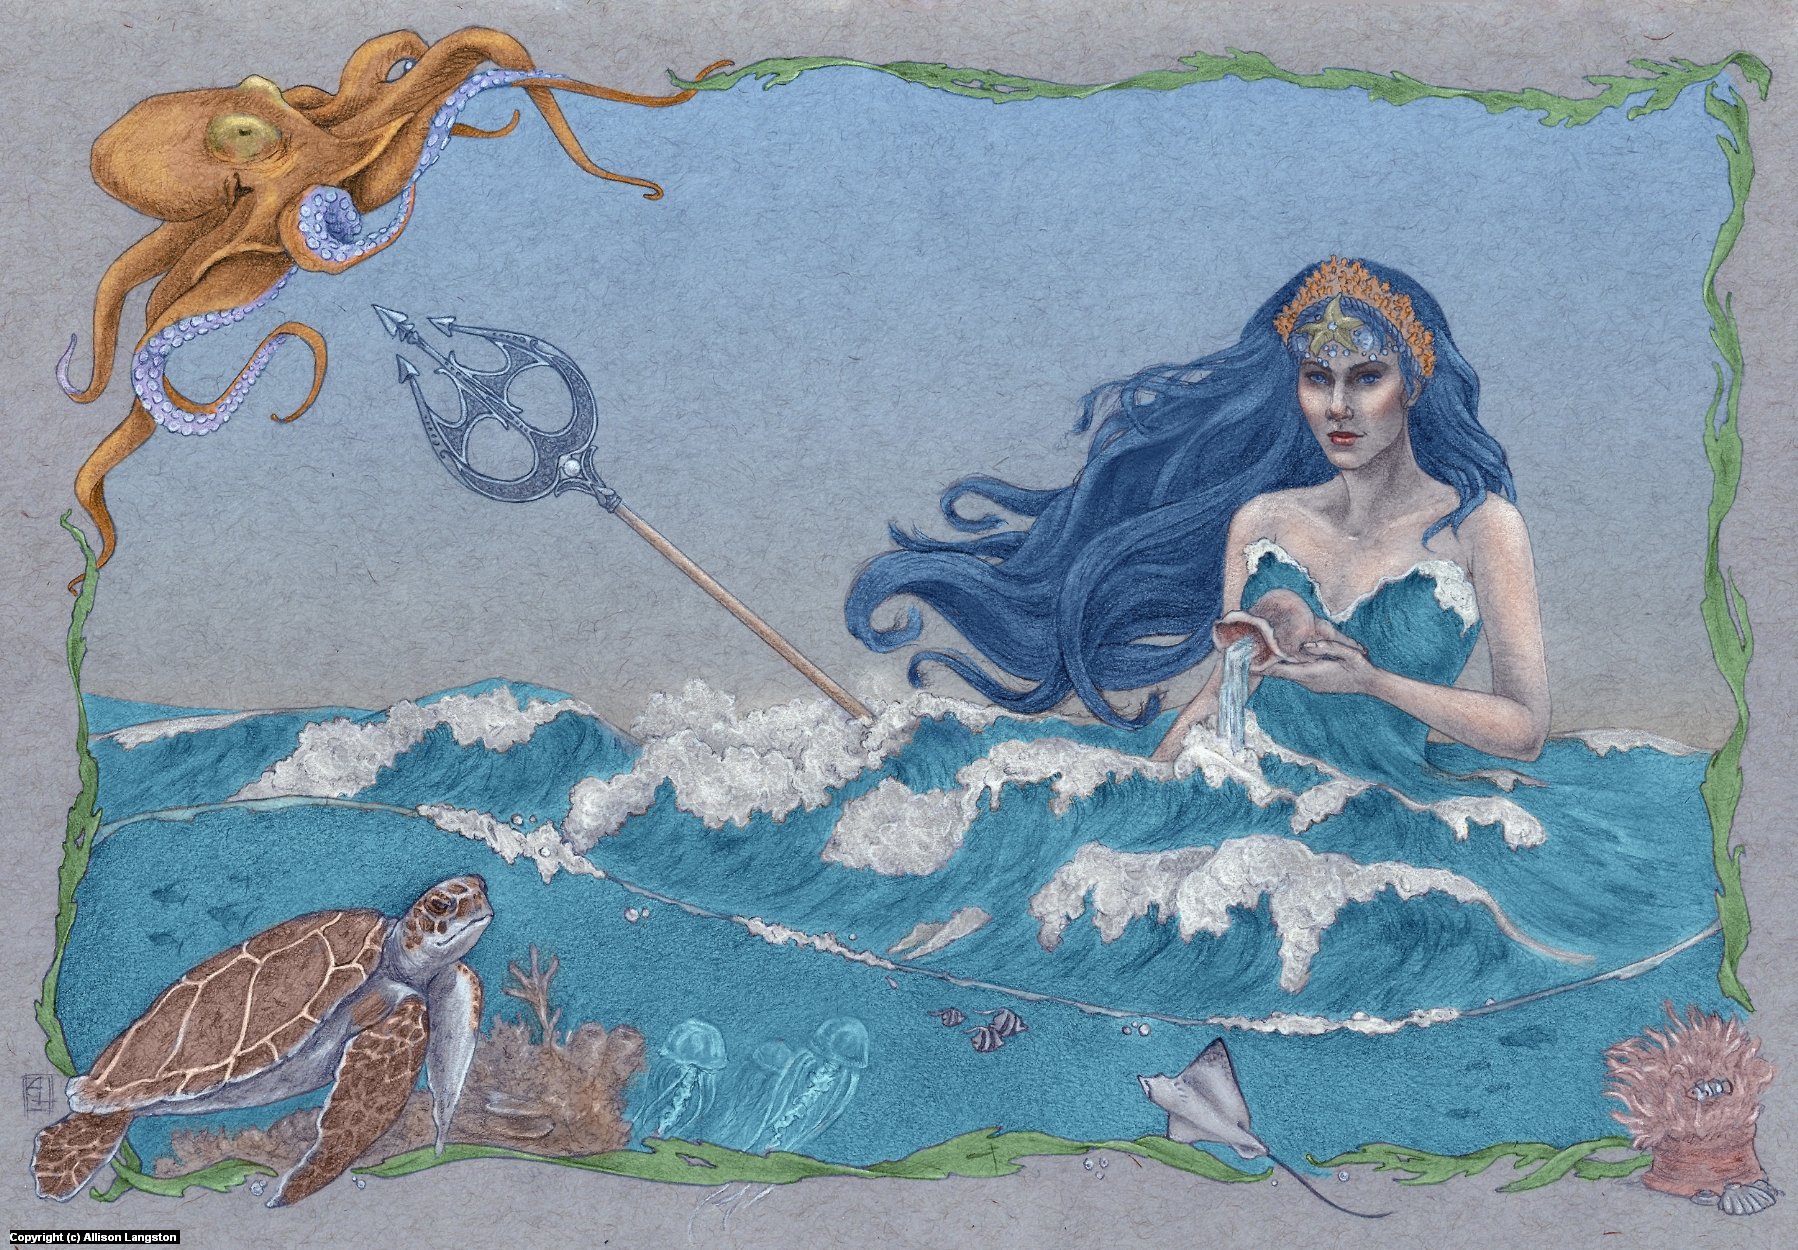 Amphitrite, Mother of the Sea Artwork by Allison Langston